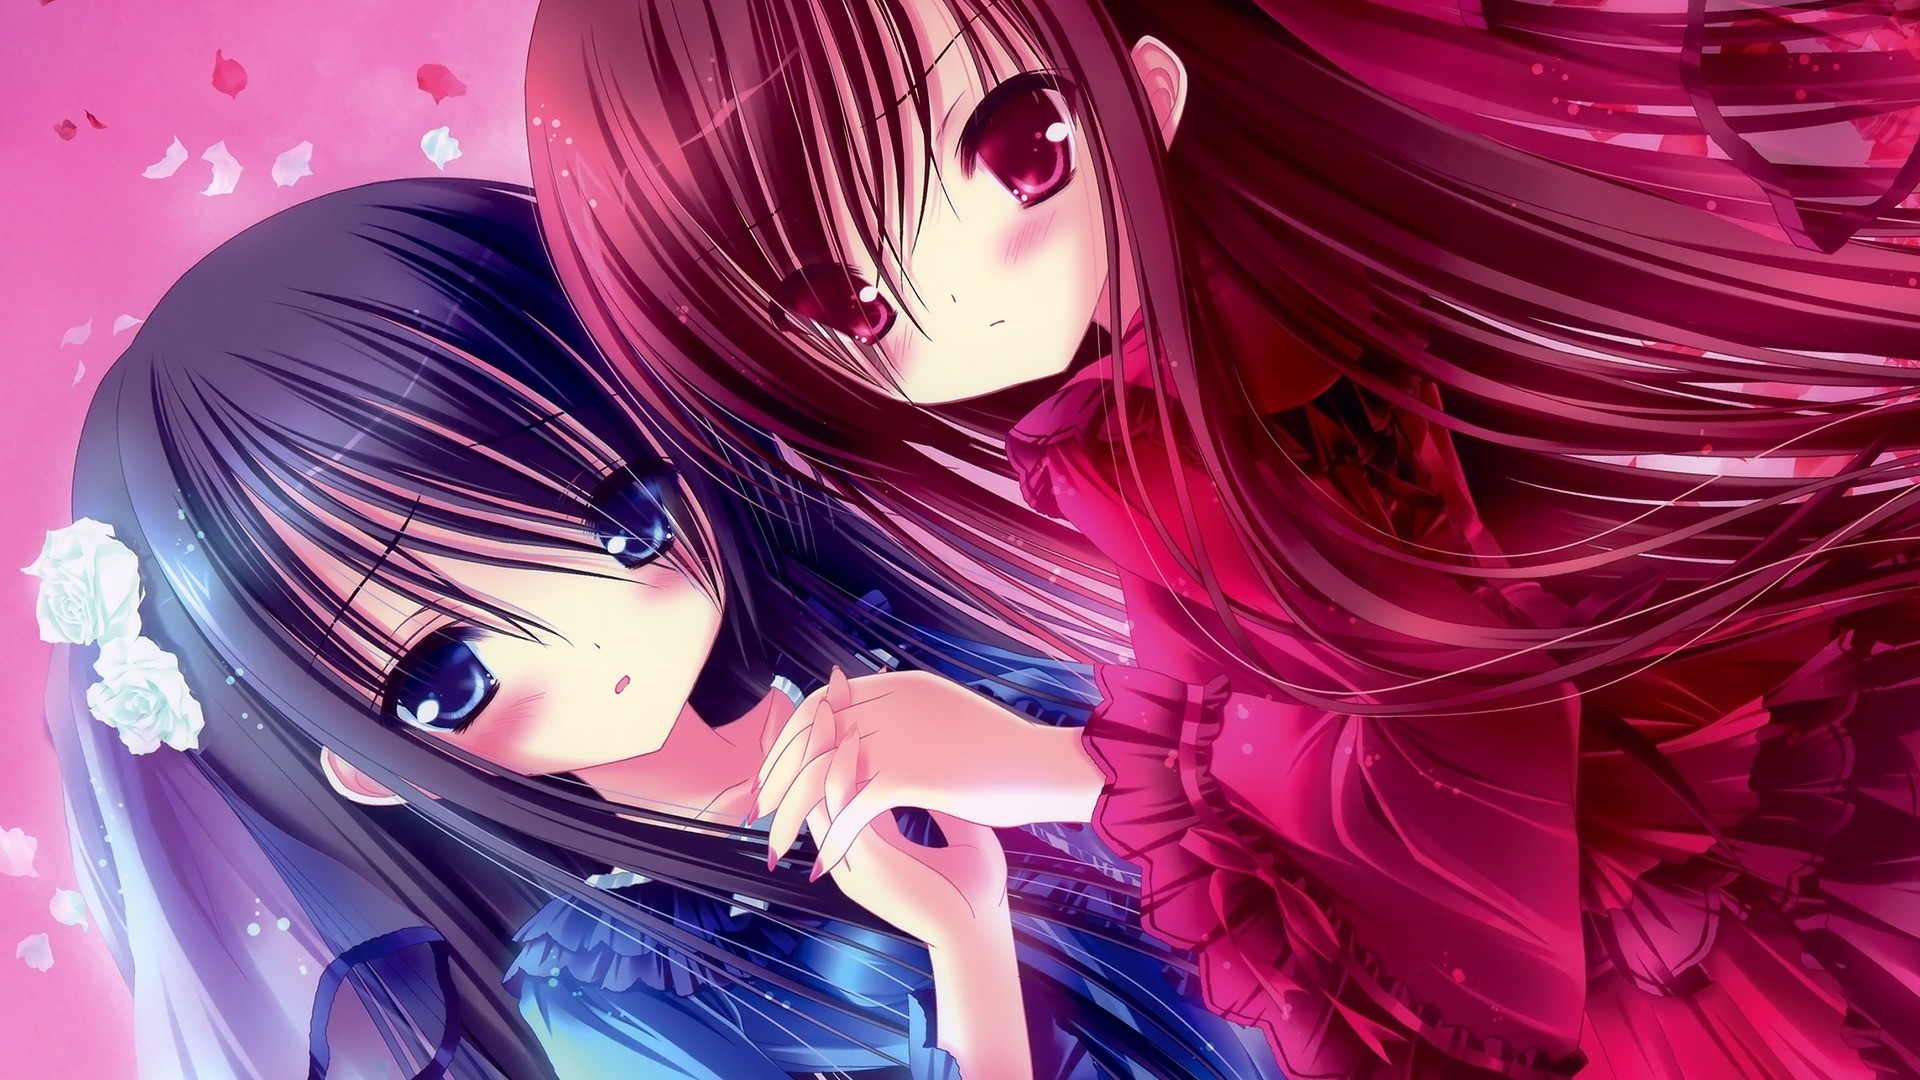 Res: 1920x1080, Awesome Anime Beautiful Sisters Girl Wallpaper Free - Beautiful Anime  Sisters HD Wallpaper